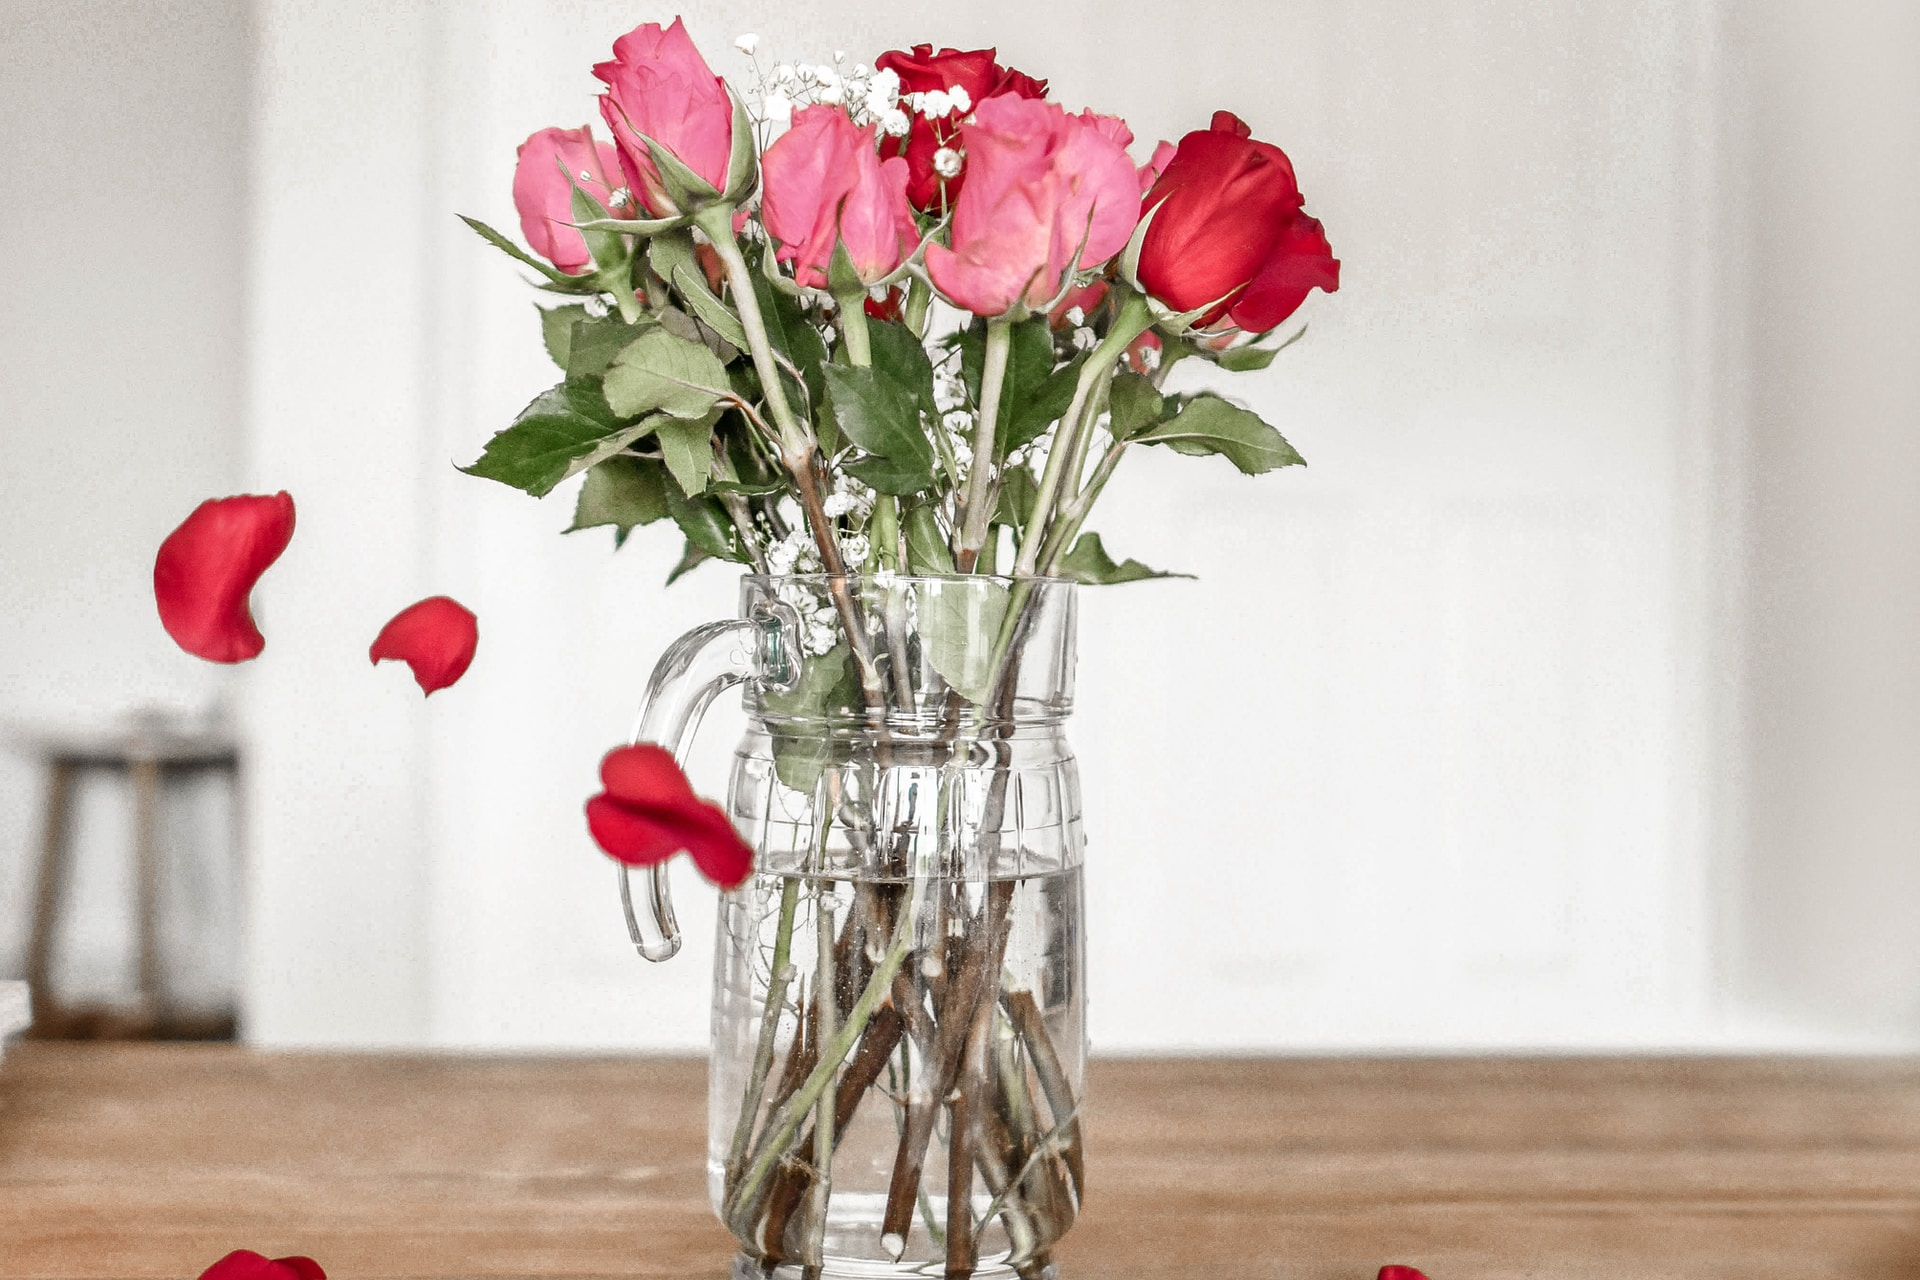 pink and red roses on clear glass vase